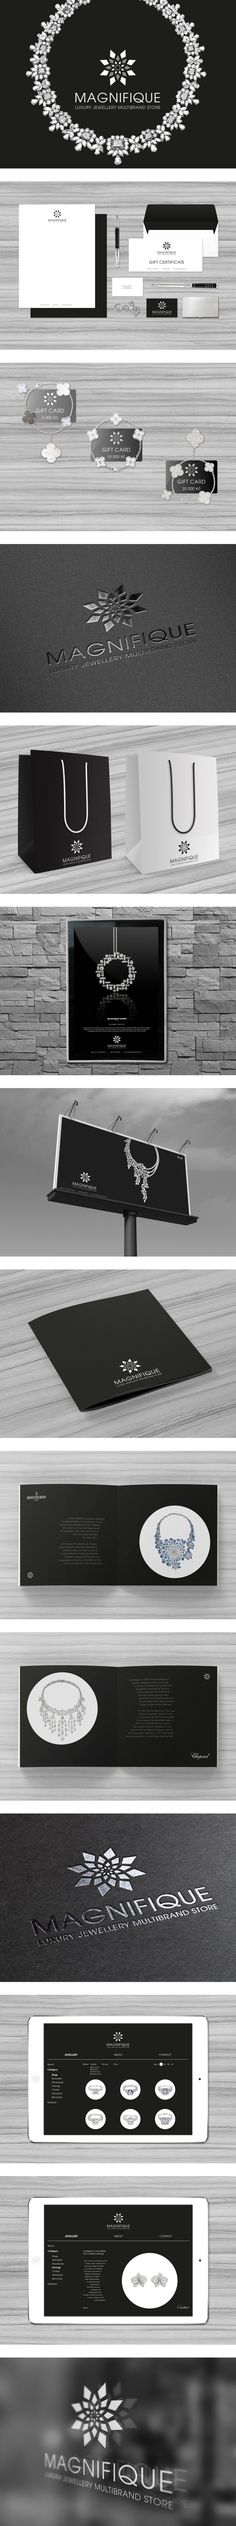 MAGNIFIQUE Luxury Jewellery Multibrand Store by Ven Klement, via Behance. Tres magnifique #jewelry #identity #packaging #branding PD